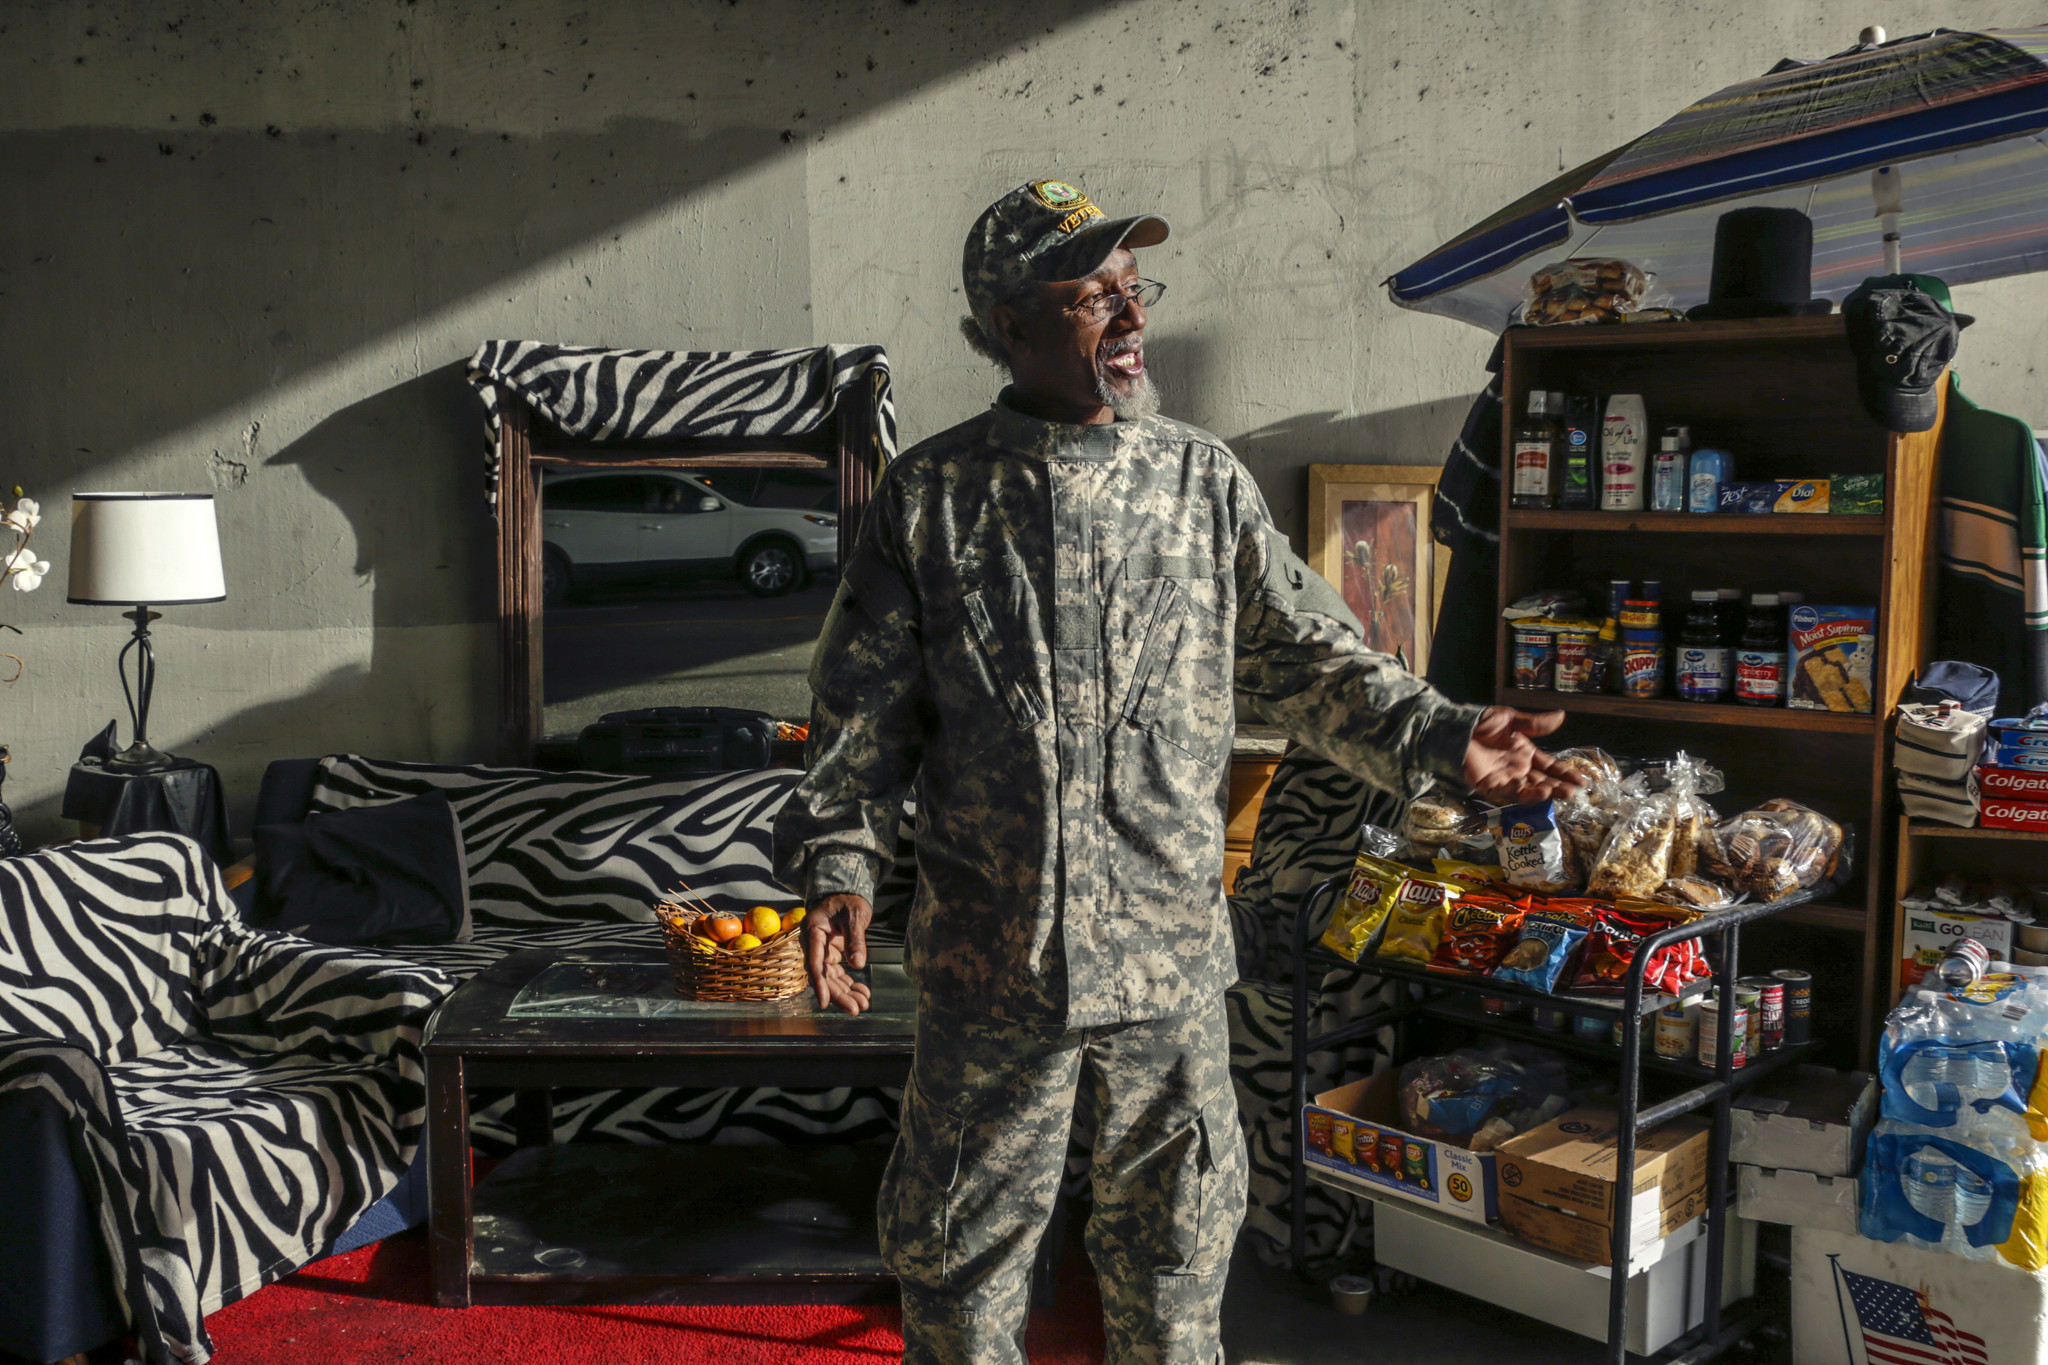 Standoff Beneath The 110 Freeway Homeless Man Builds A